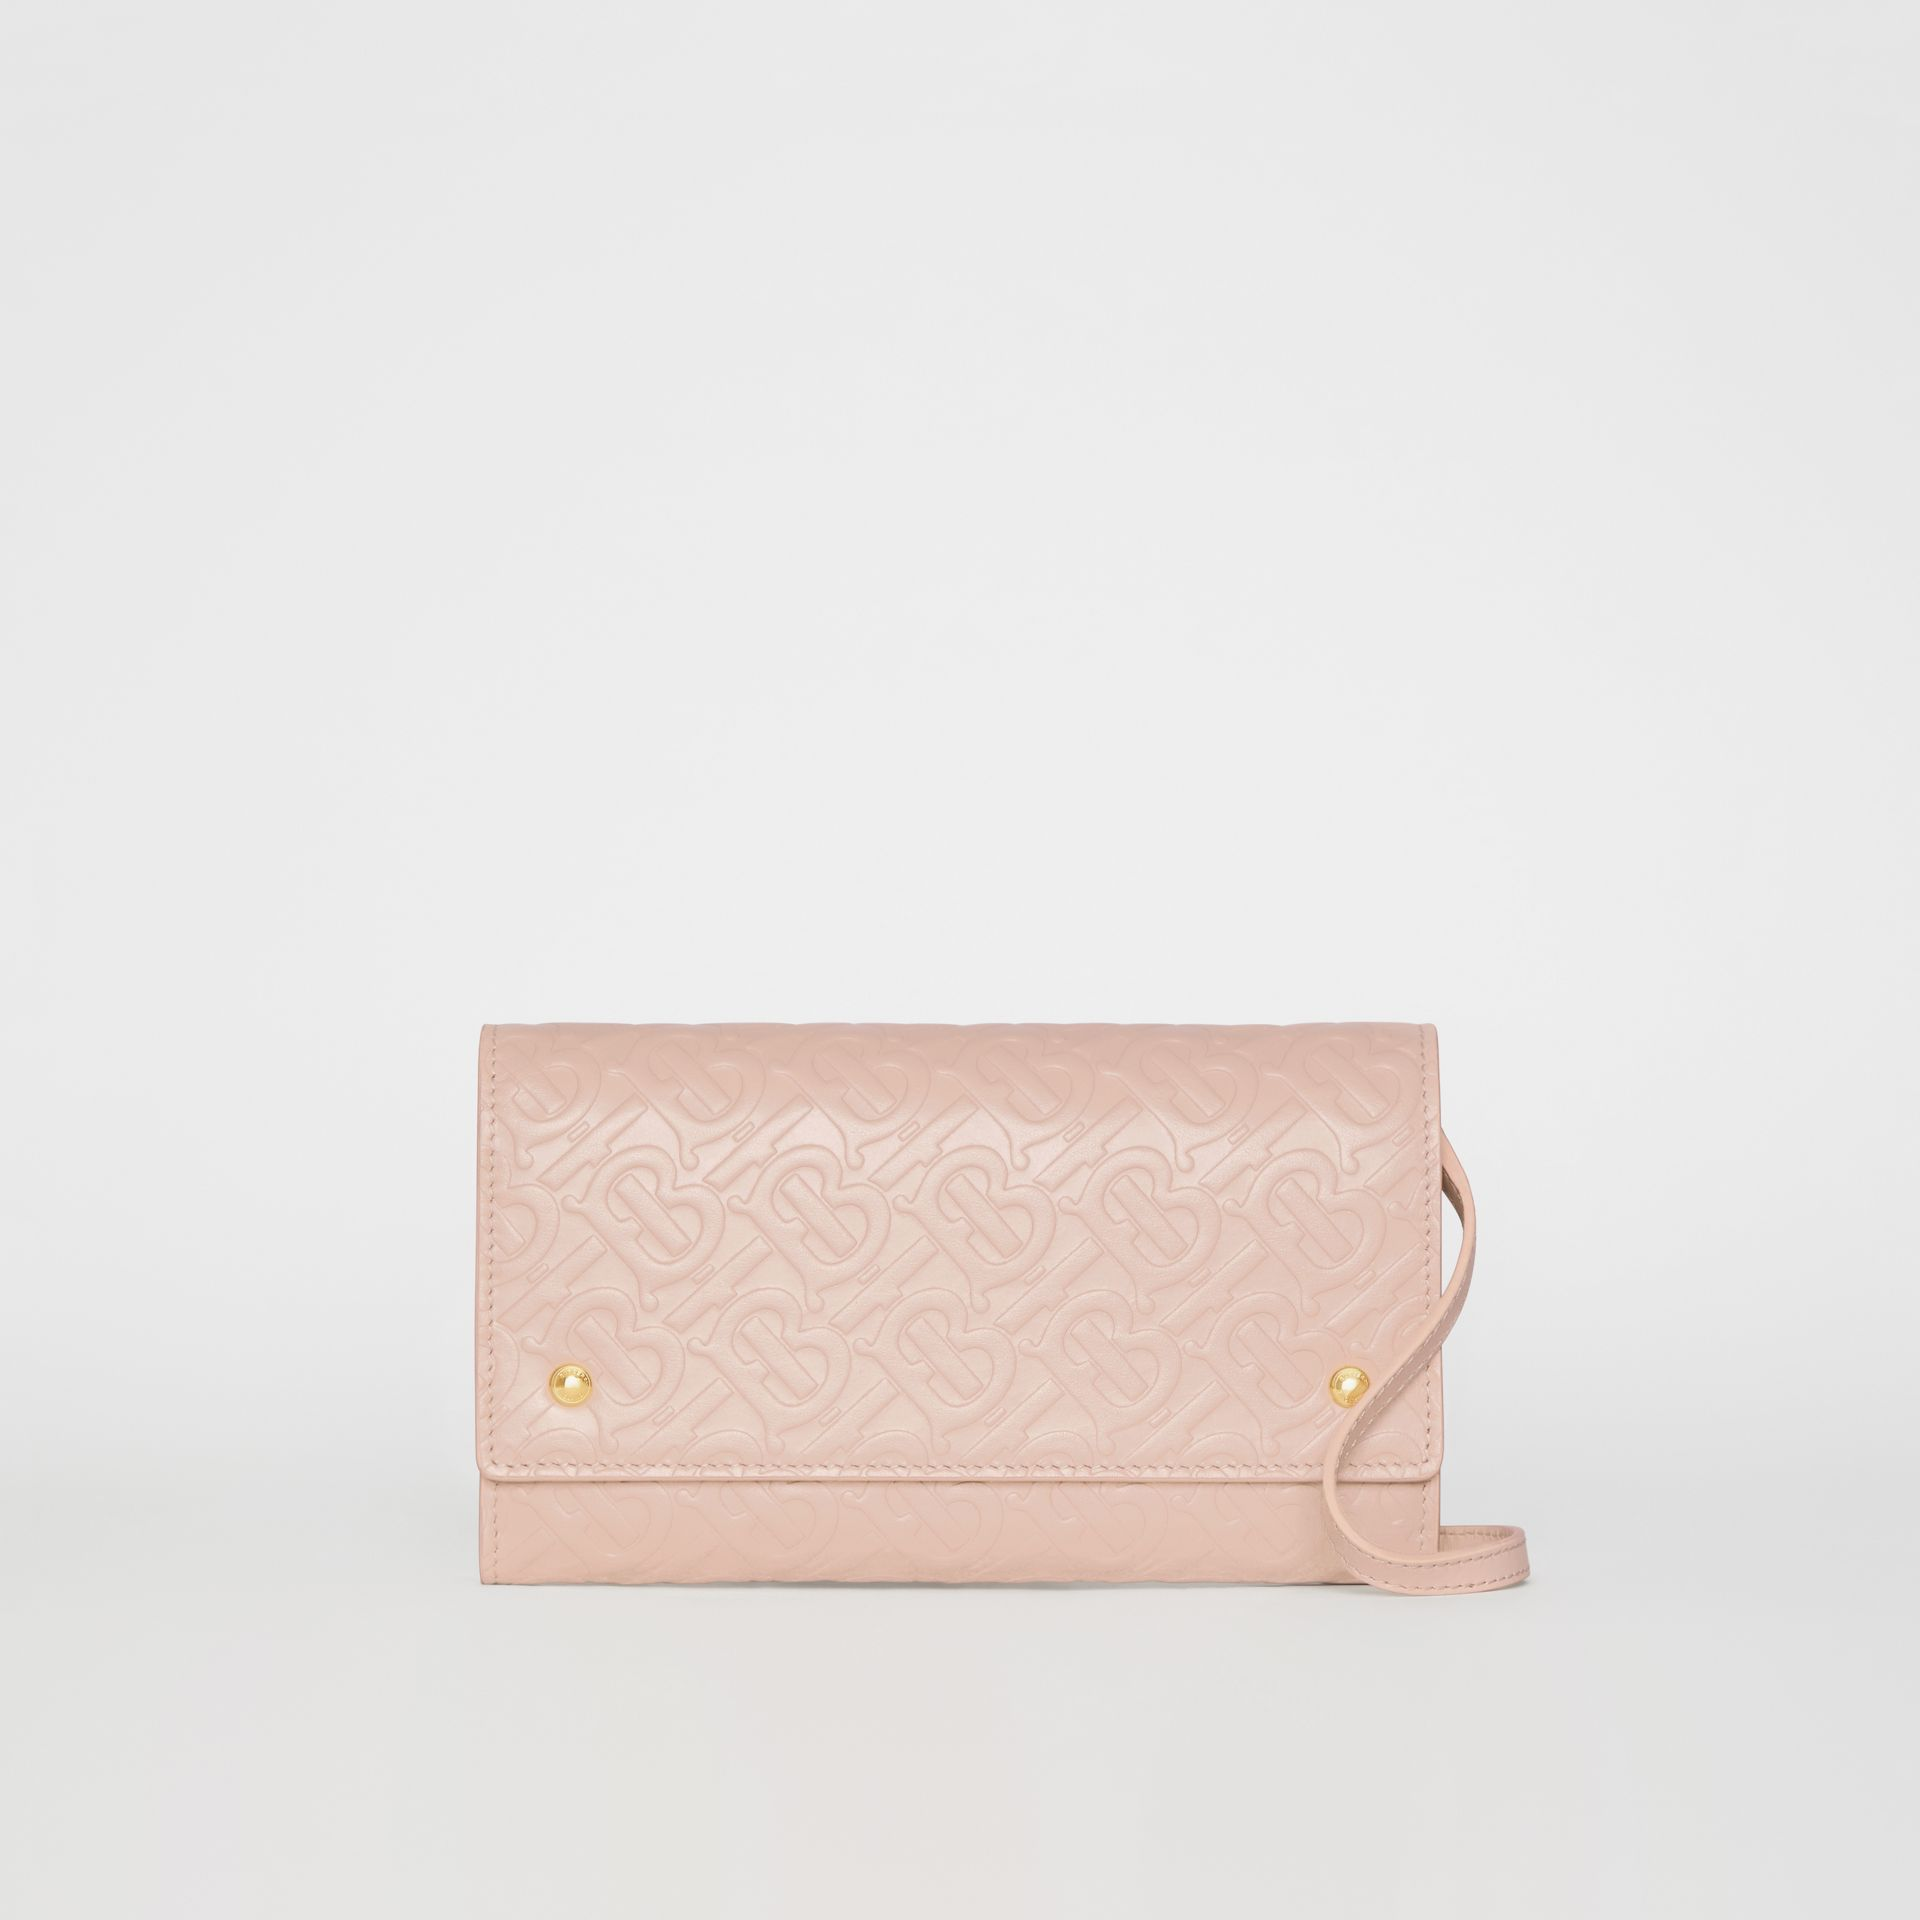 Monogram Leather Wallet with Detachable Strap in Rose Beige - Women | Burberry - gallery image 0